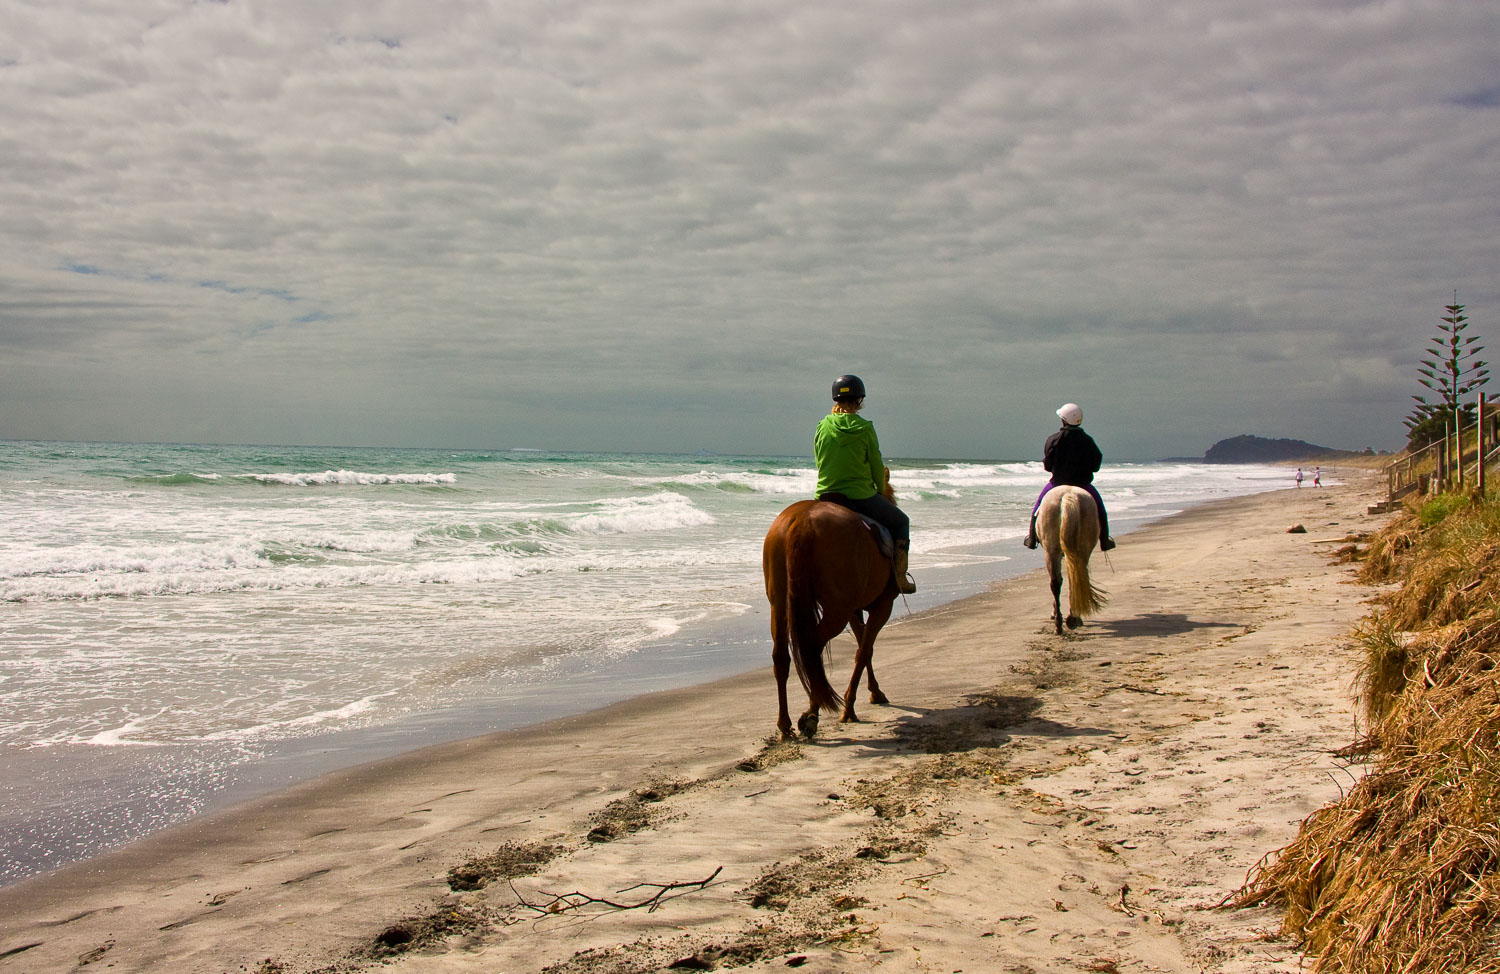 Horses-on-Beach-South-Pacific-Ocean-6288.jpg